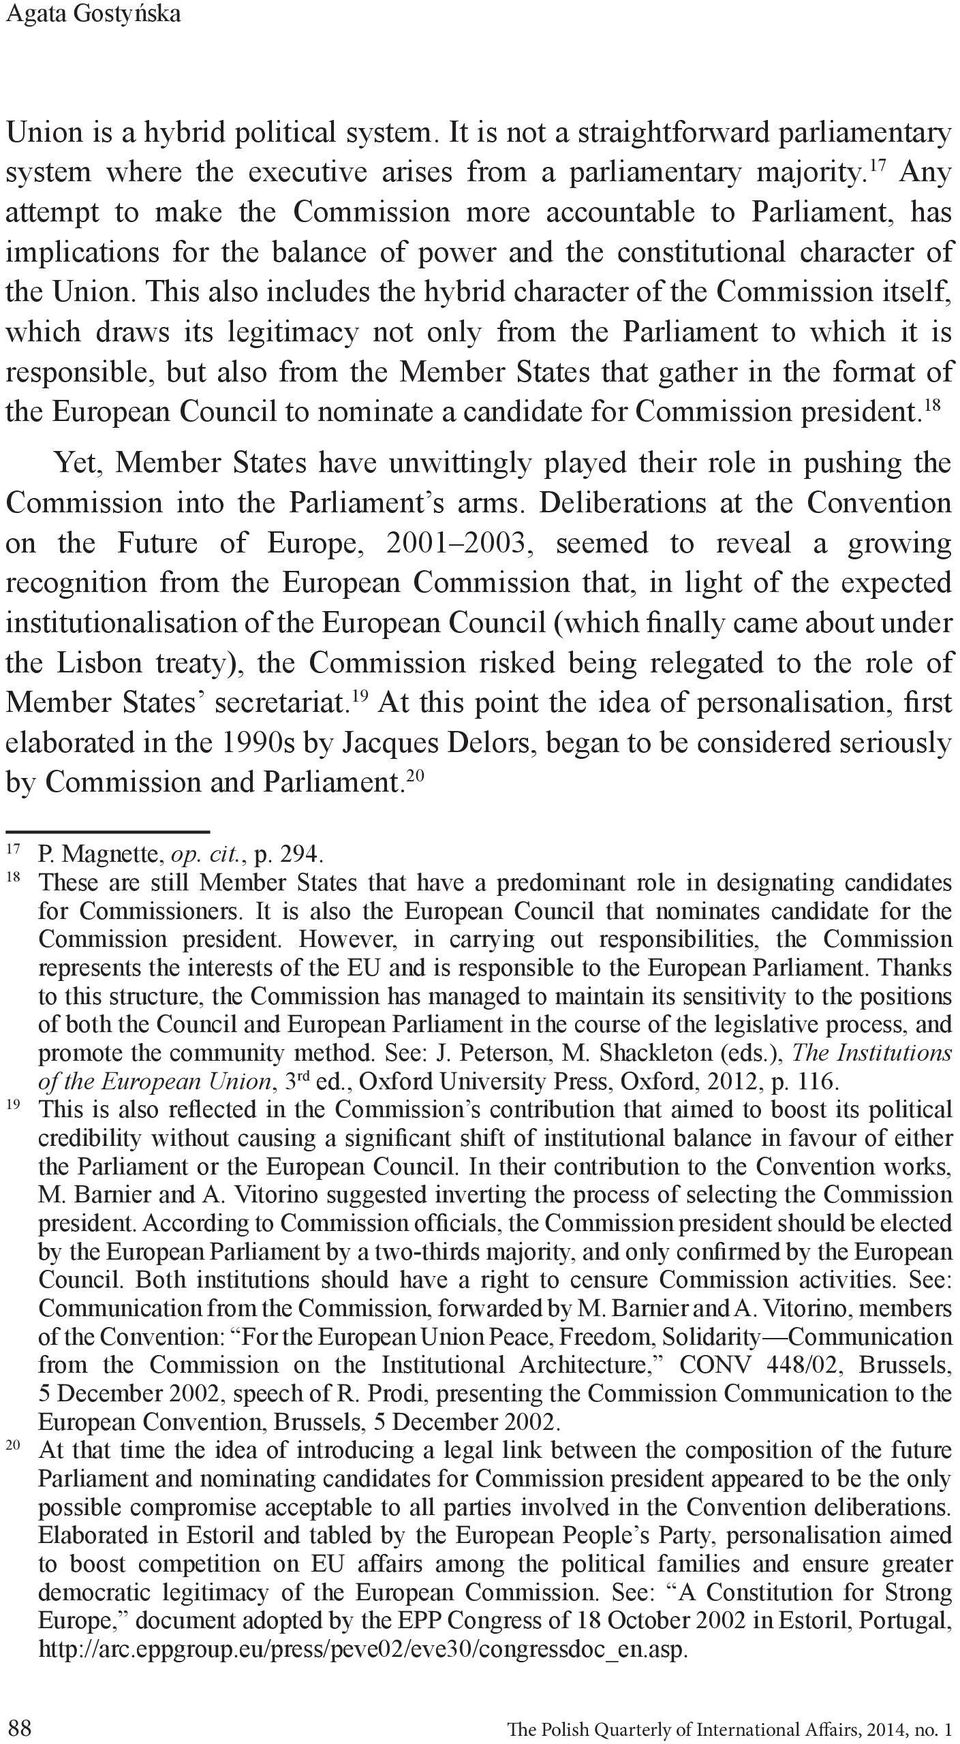 This also includes the hybrid character of the Commission itself, which draws its legitimacy not only from the Parliament to which it is responsible, but also from the Member States that gather in